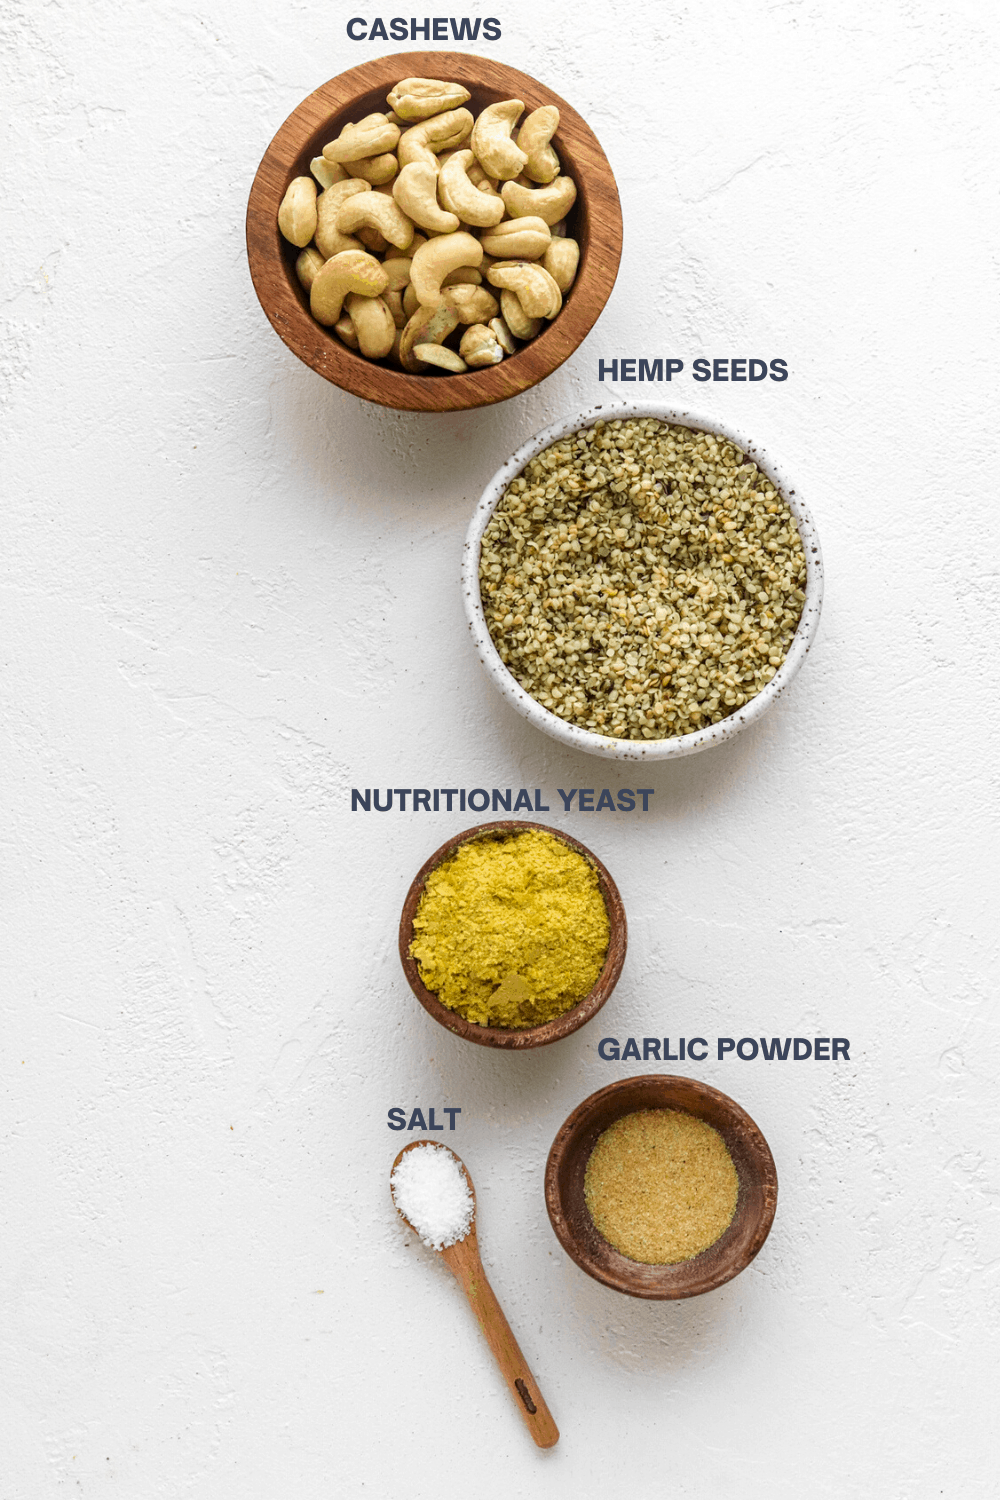 Bowl of cashews next to a round white bowl of hemp seeds with a wooden bowl of nutritional yeast and bowl of garlic powder in front of it.